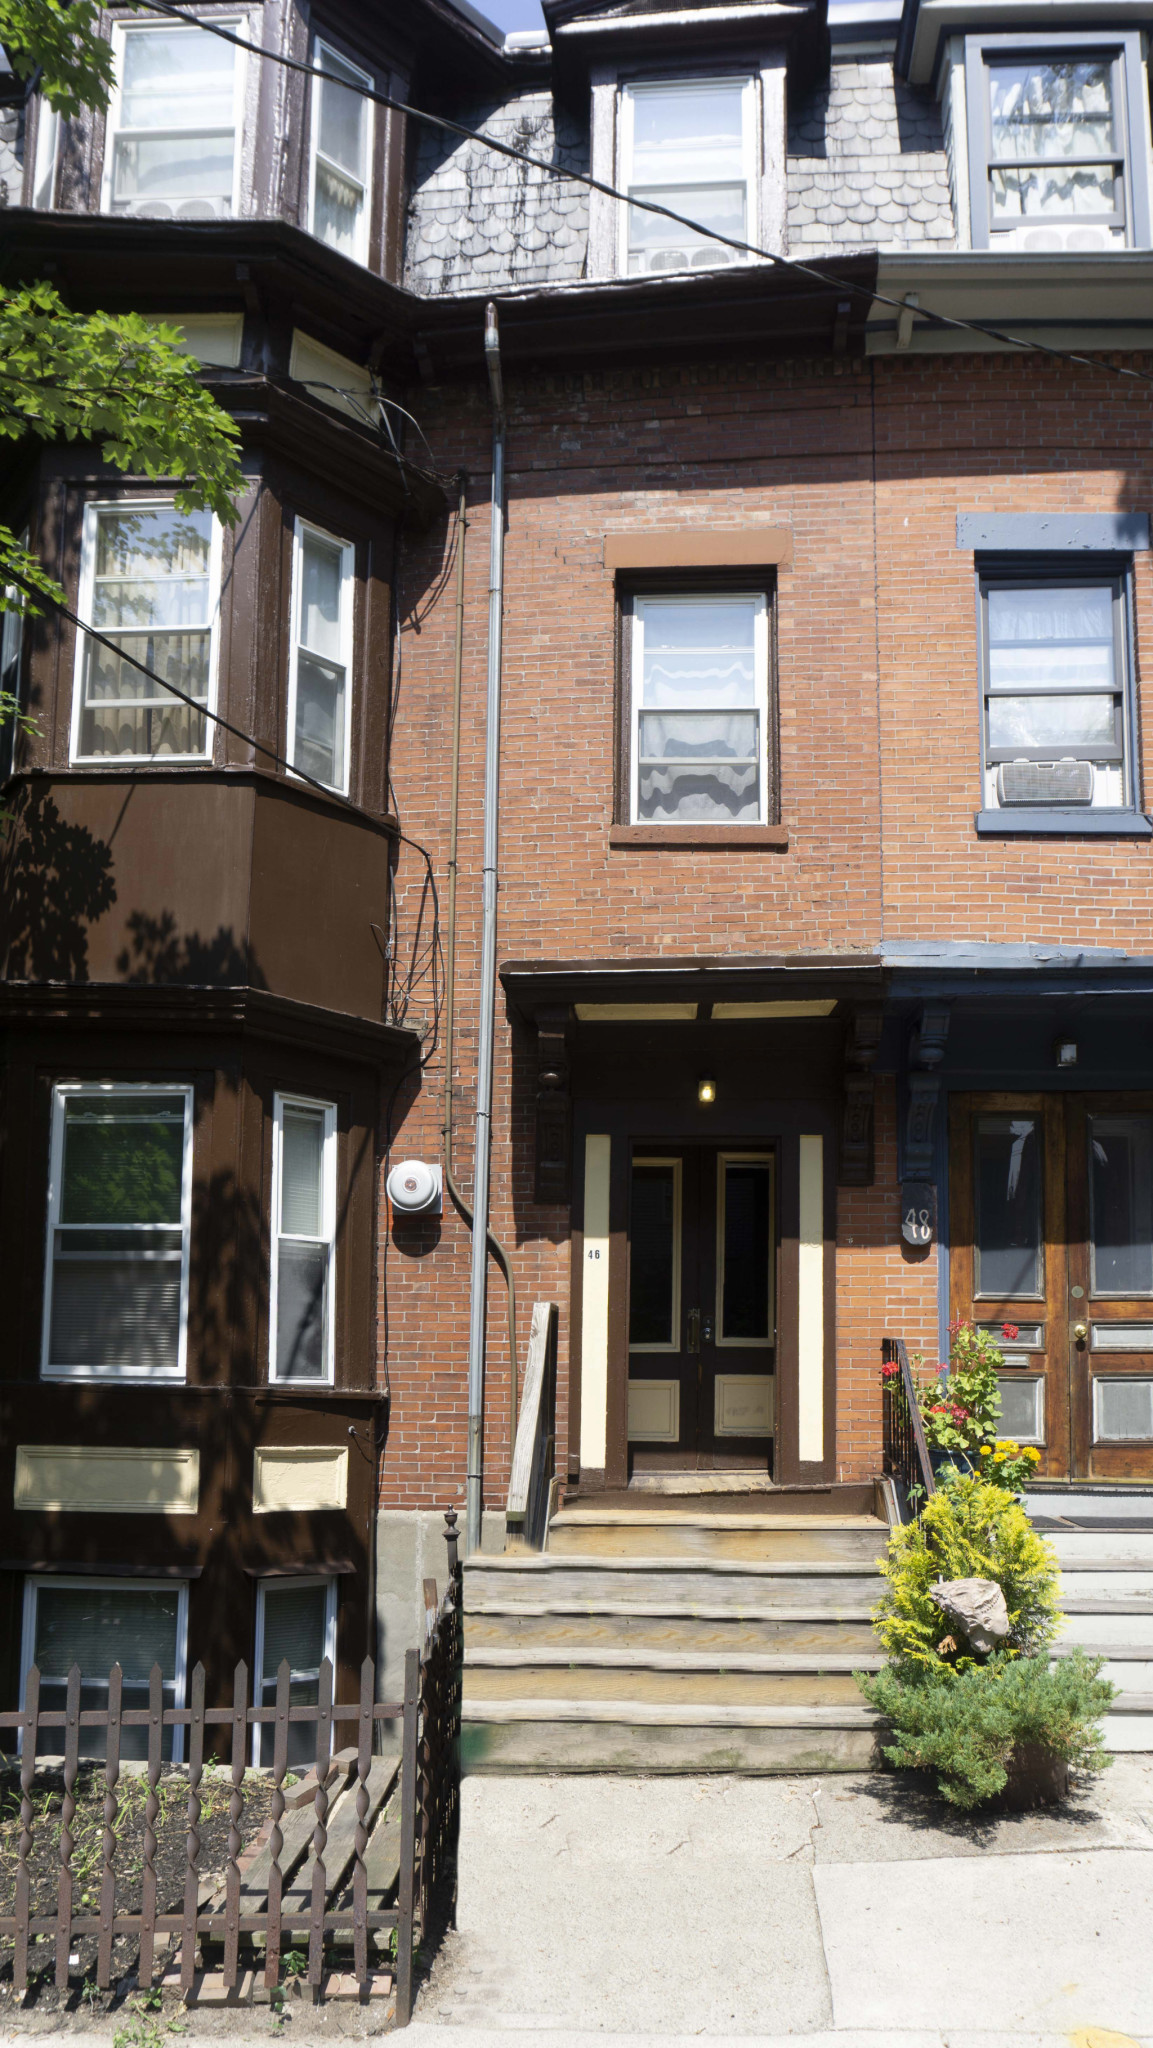 Pictures of  property for rent on Sheridan St., Boston, MA 02130